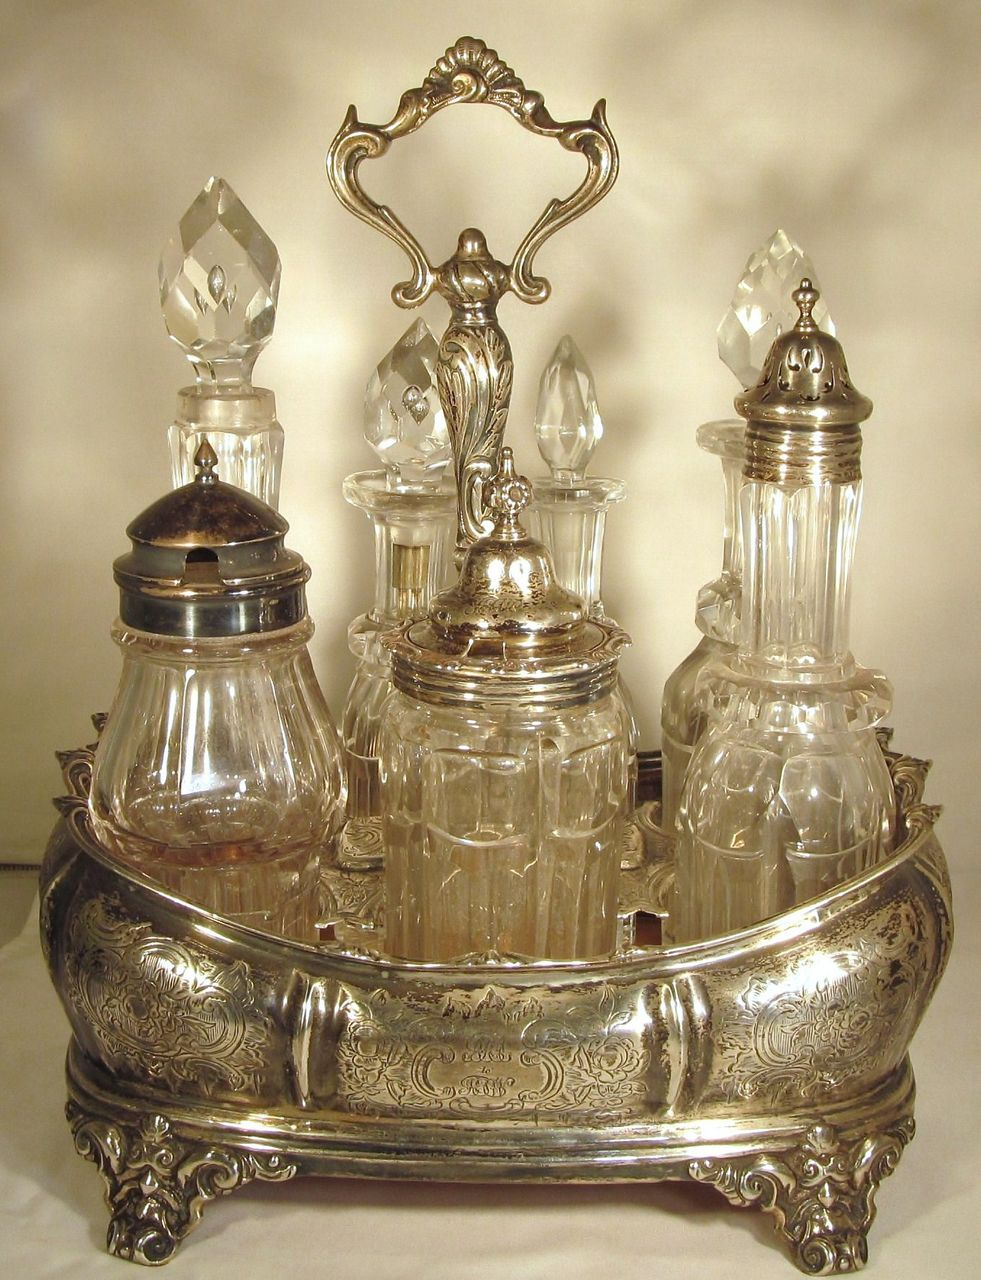 John Emes  1857   STERLING SILVER  Condiment Set  Cut Glass  London